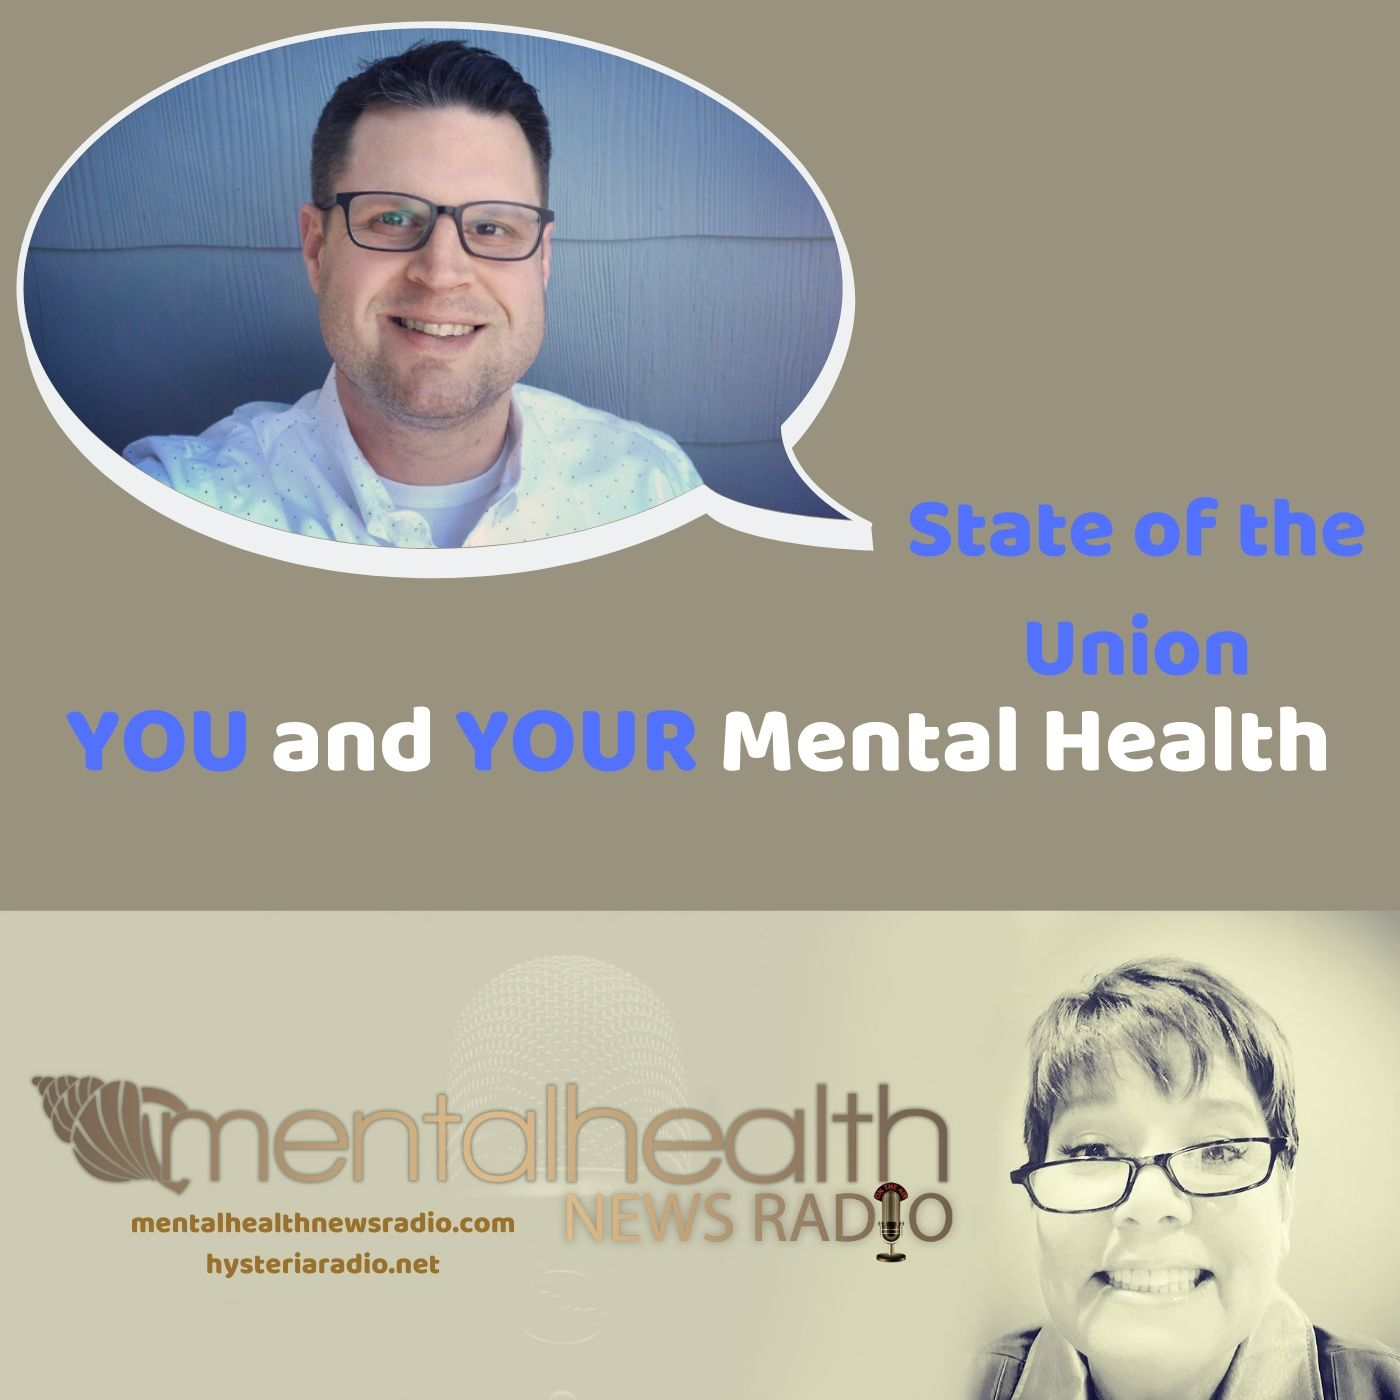 Mental Health News Radio - State of the Union: You and Your Mental Health